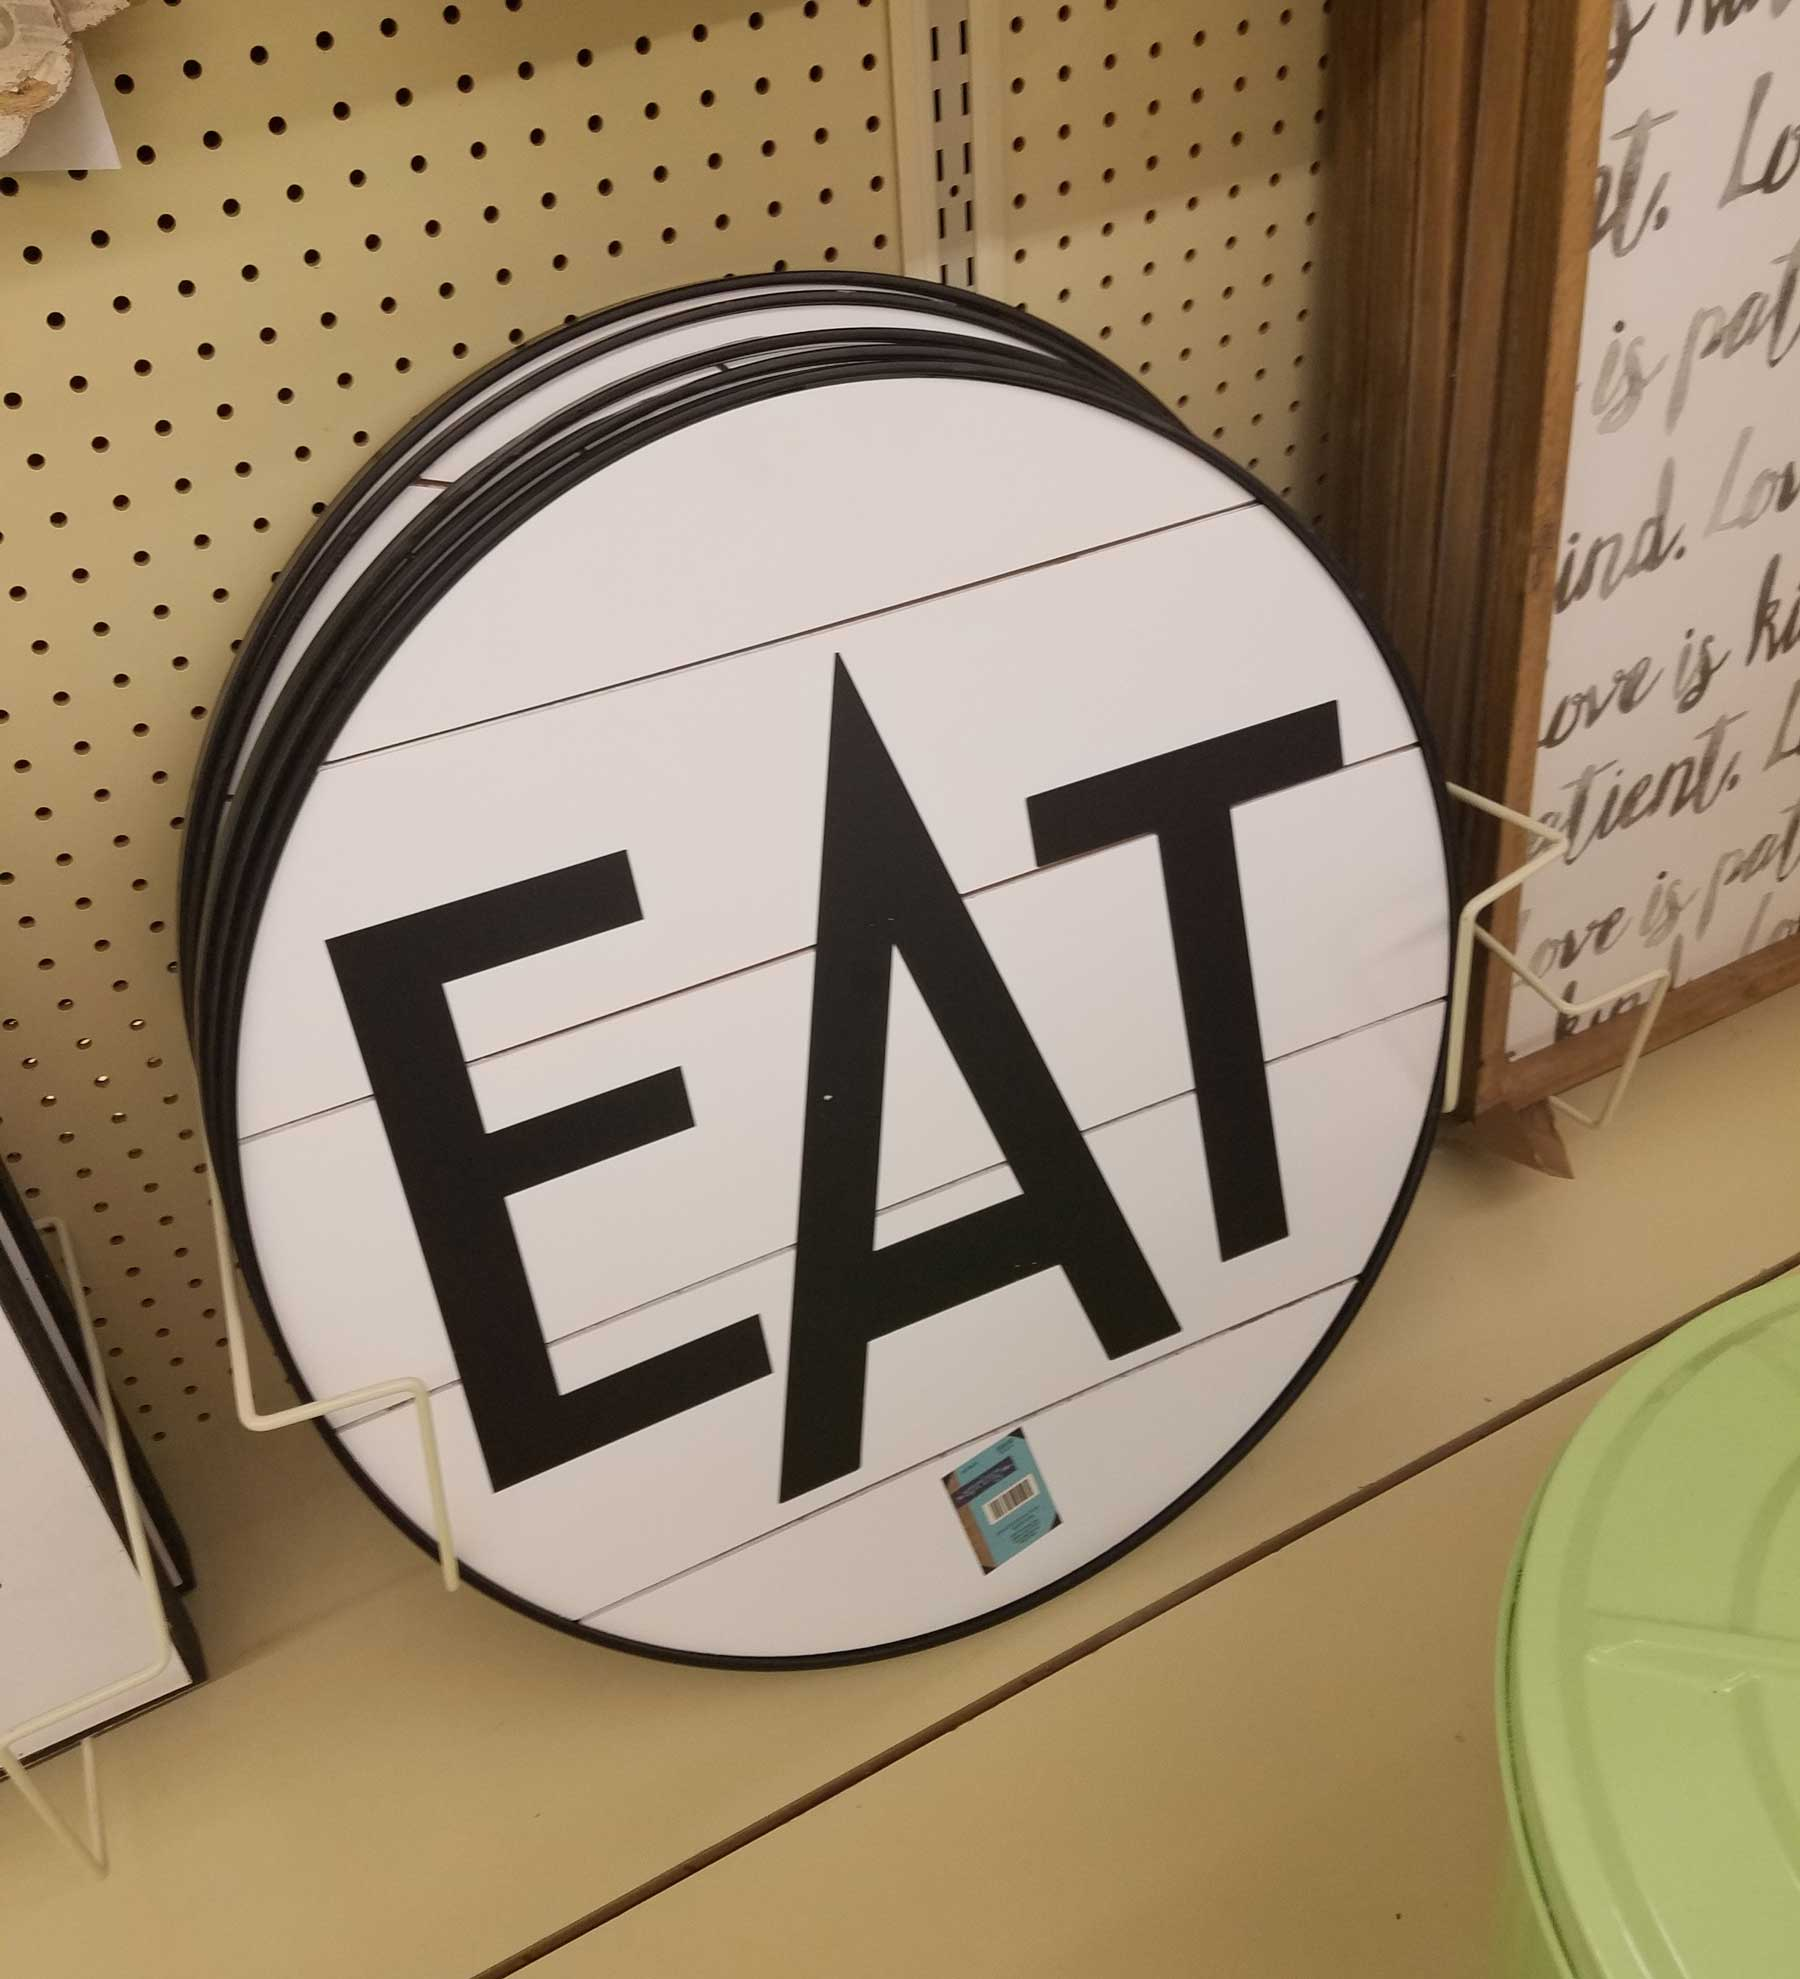 eat-sign